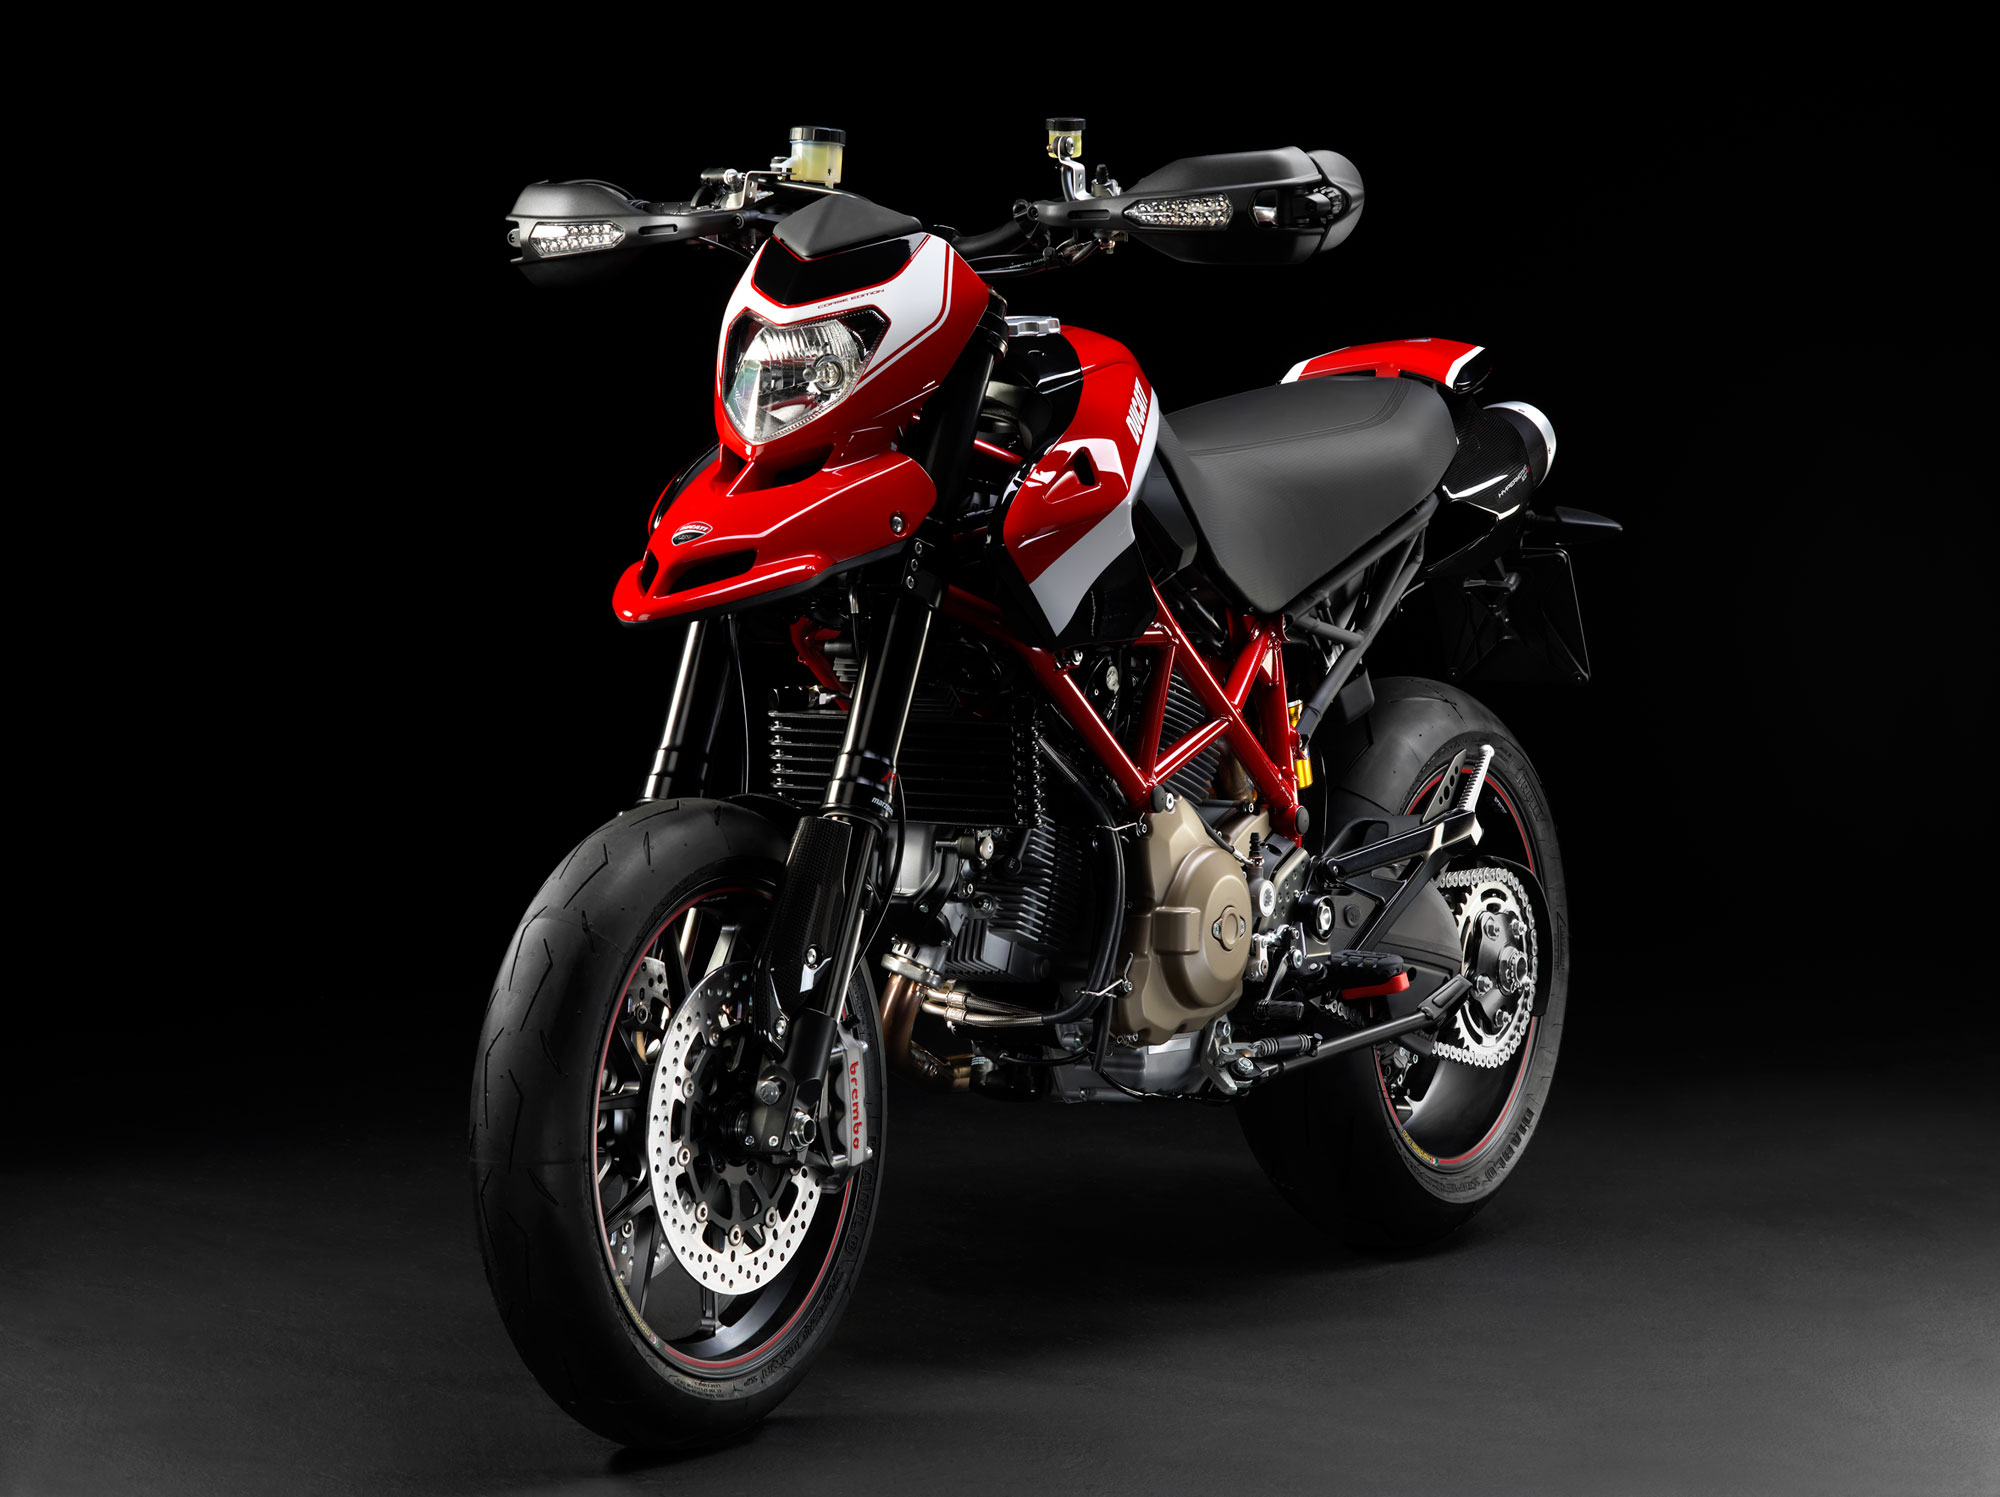 Ducati Hypermotard 1100 EVO SP 2011 images #79397